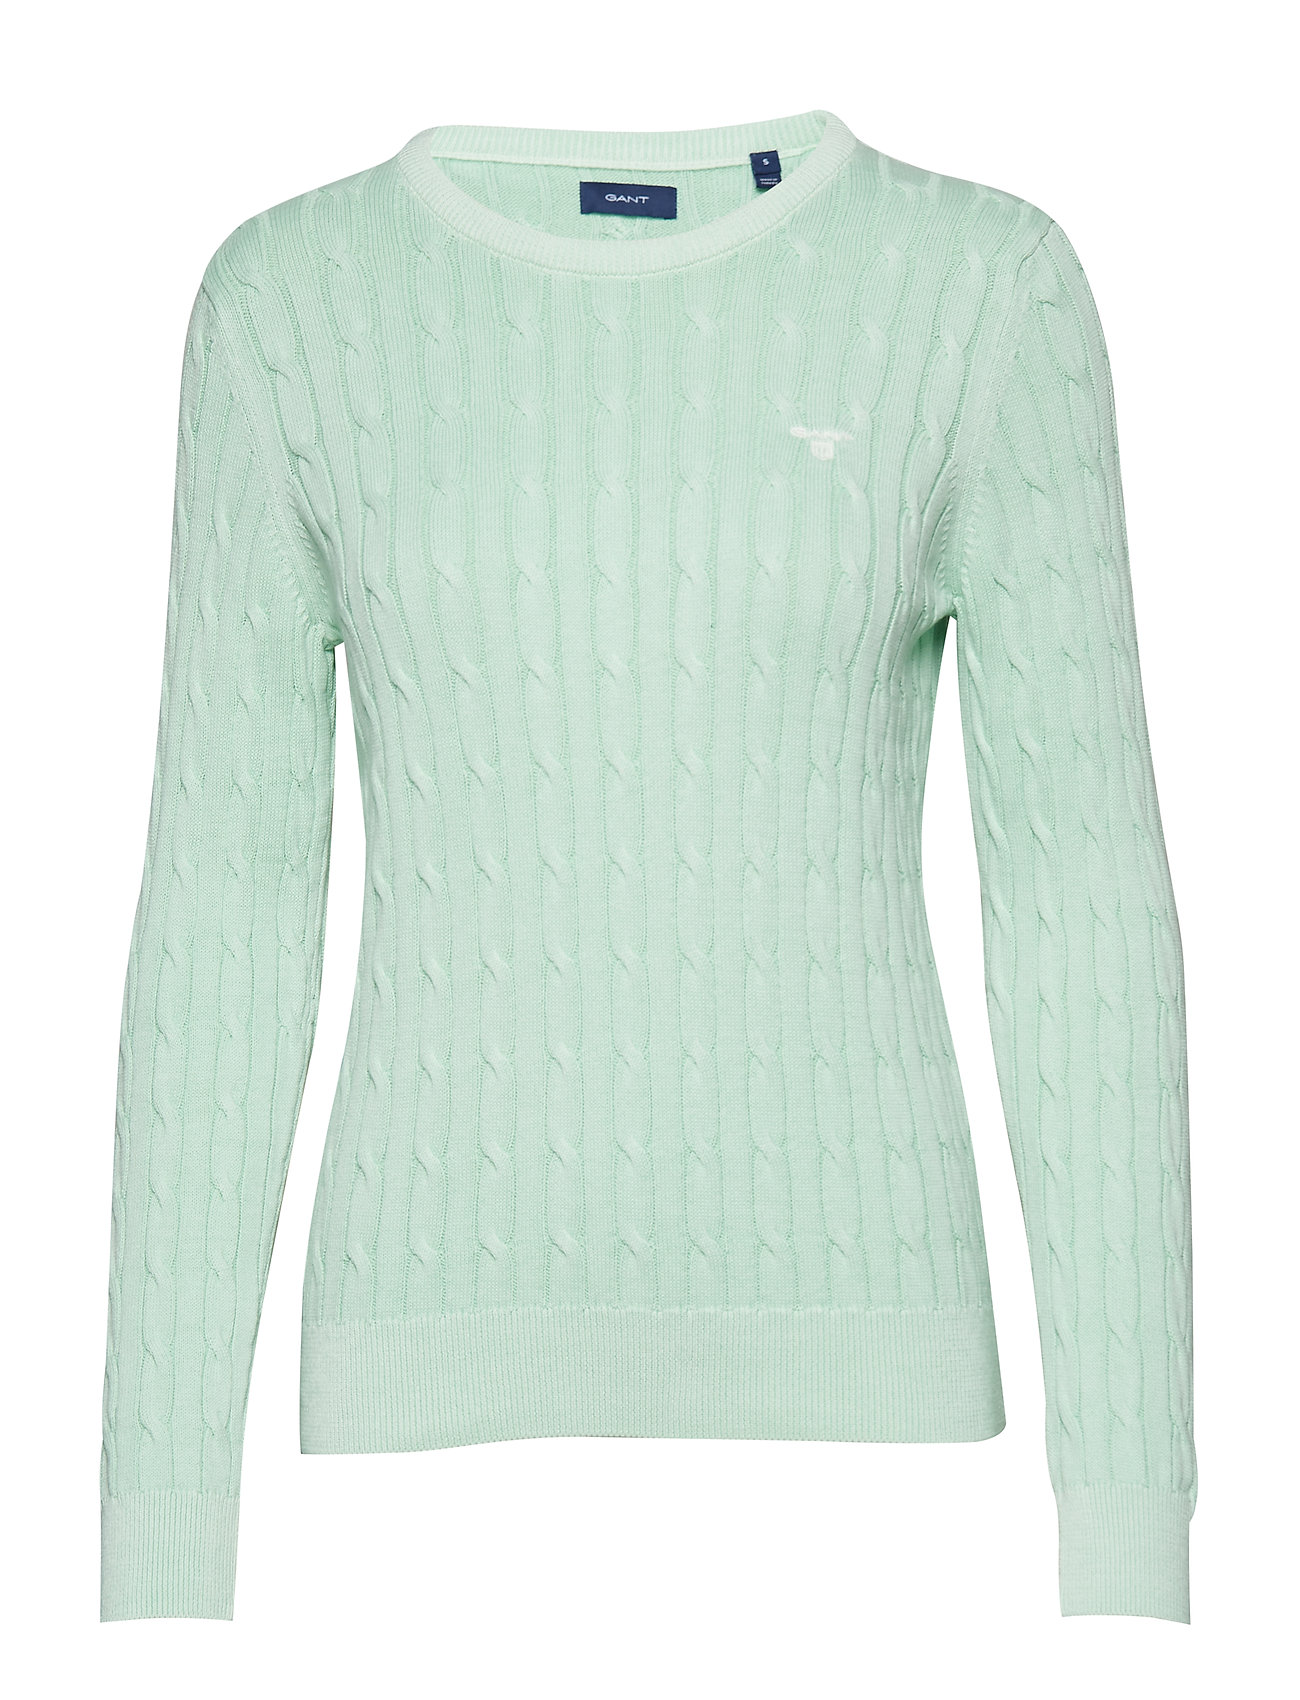 GANT O.1 SUN BLEACHED CABLE CREW - BAY GREEN